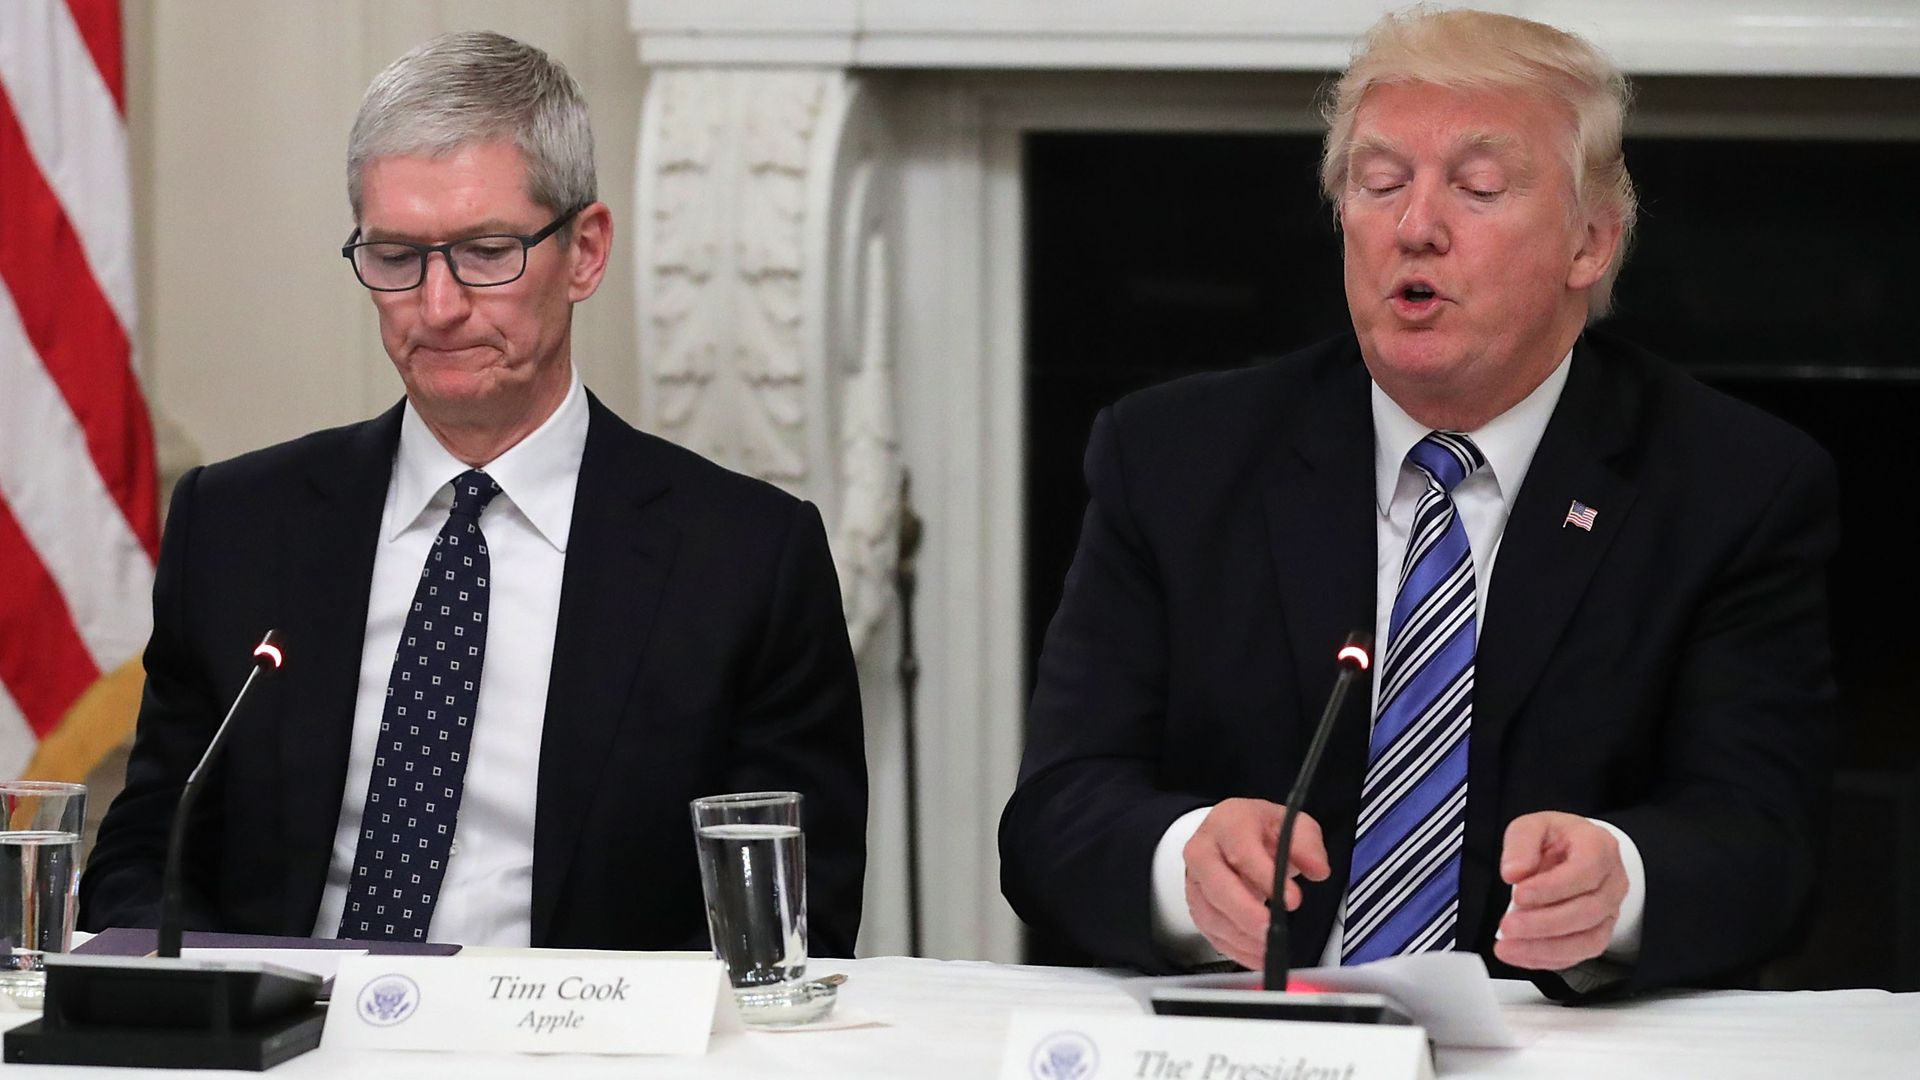 Apple CEO Tim Cook in a 2017 meeting at the White House with President Trump.